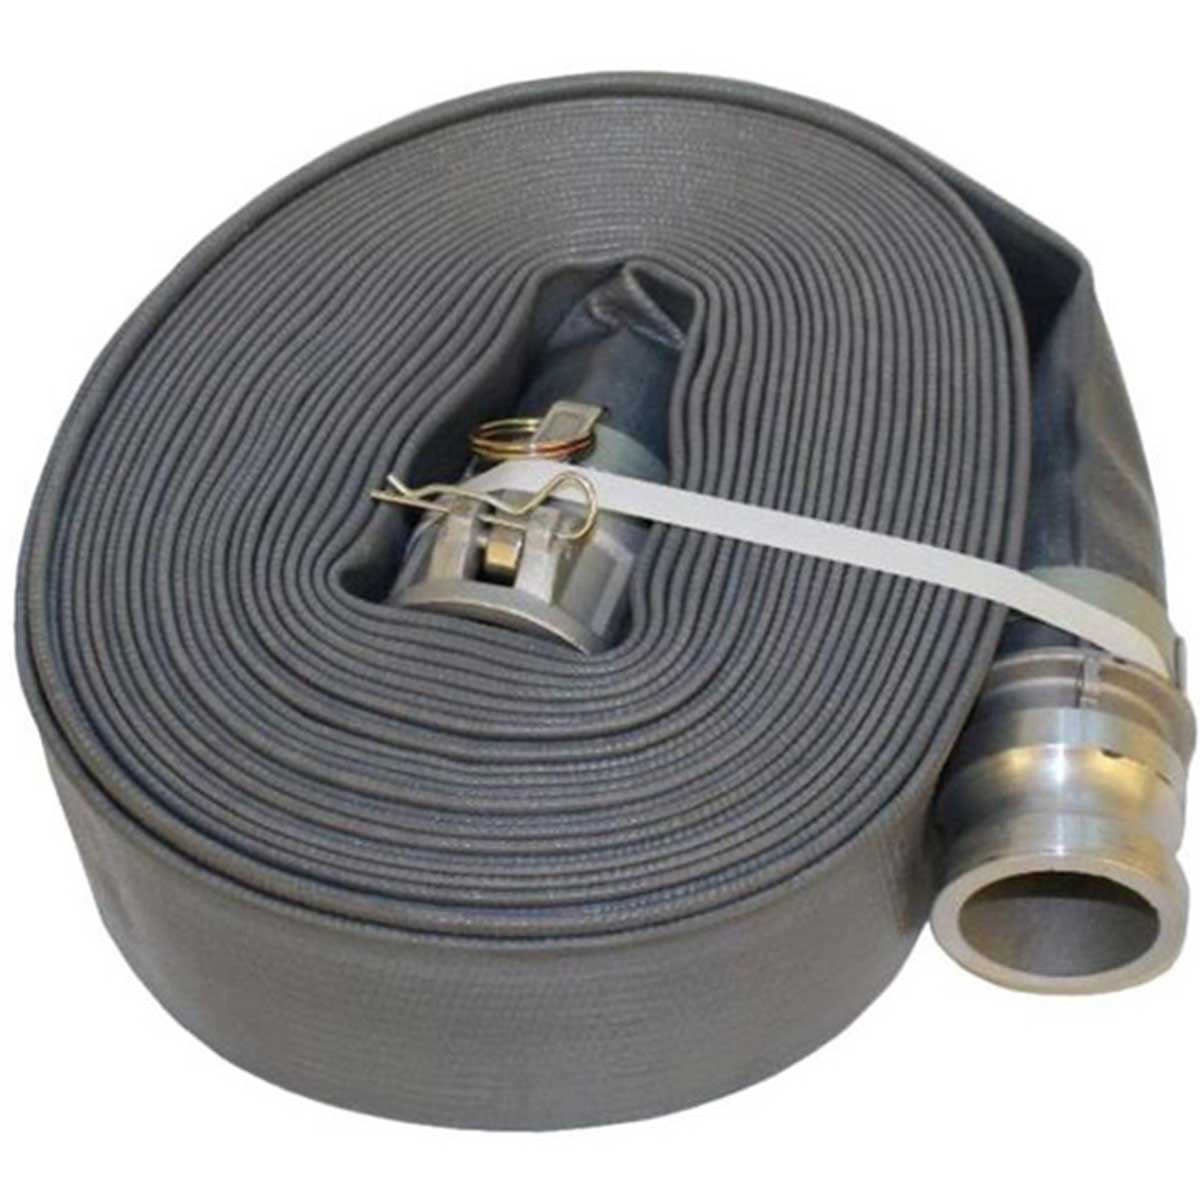 Wacker Discharge/Extension Hose Kit for 3 inch Trash Pump